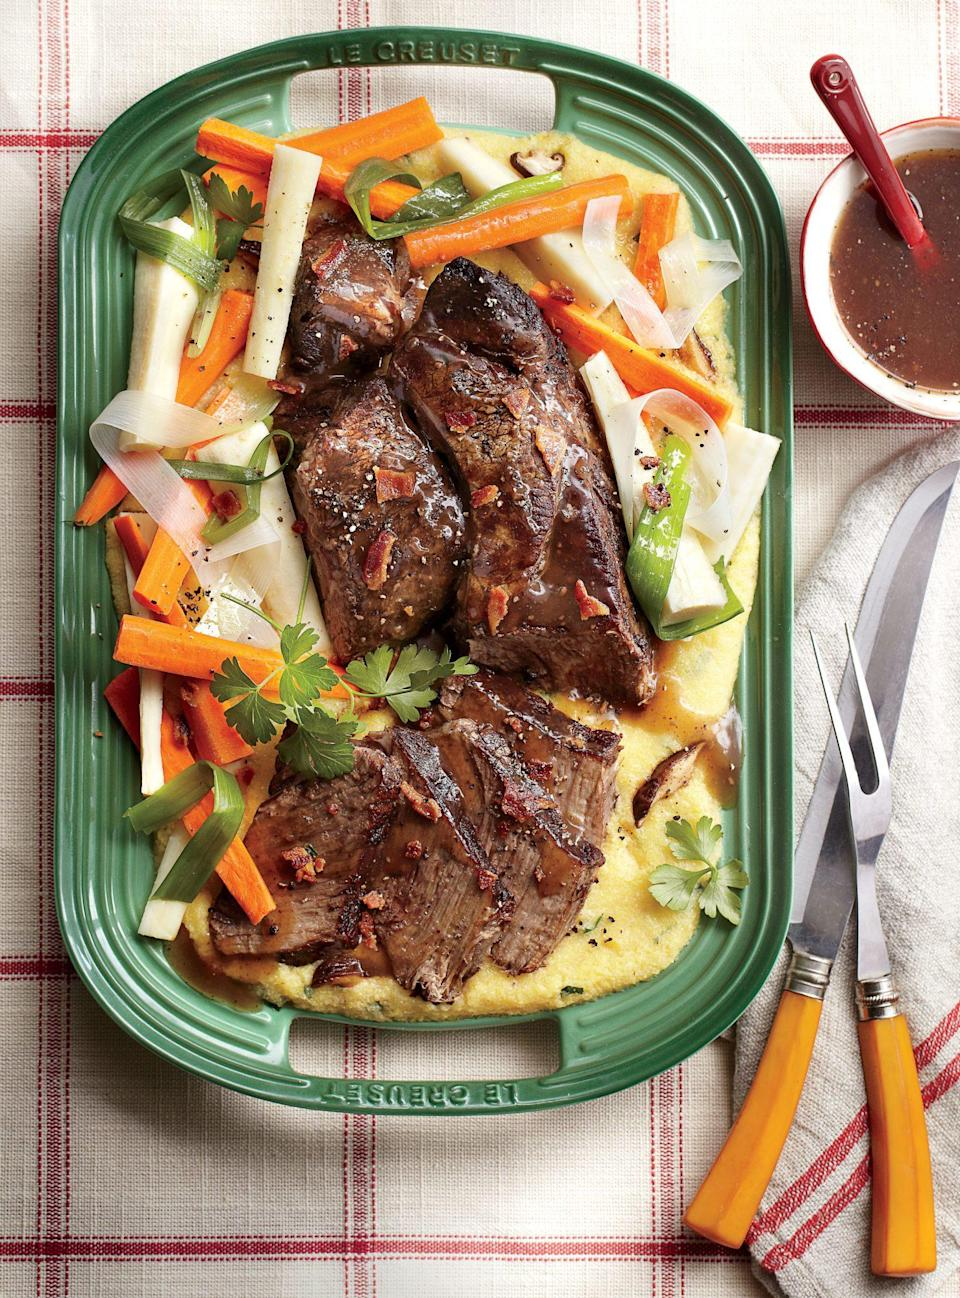 """<p><strong>Recipe: <a href=""""https://www.southernliving.com/syndication/company-pot-roast-0"""" rel=""""nofollow noopener"""" target=""""_blank"""" data-ylk=""""slk:Company Pot Roast"""" class=""""link rapid-noclick-resp"""">Company Pot Roast</a></strong></p> <p>Your slow cooker will help this company-worthy meal come together even on busy weeknights. </p>"""